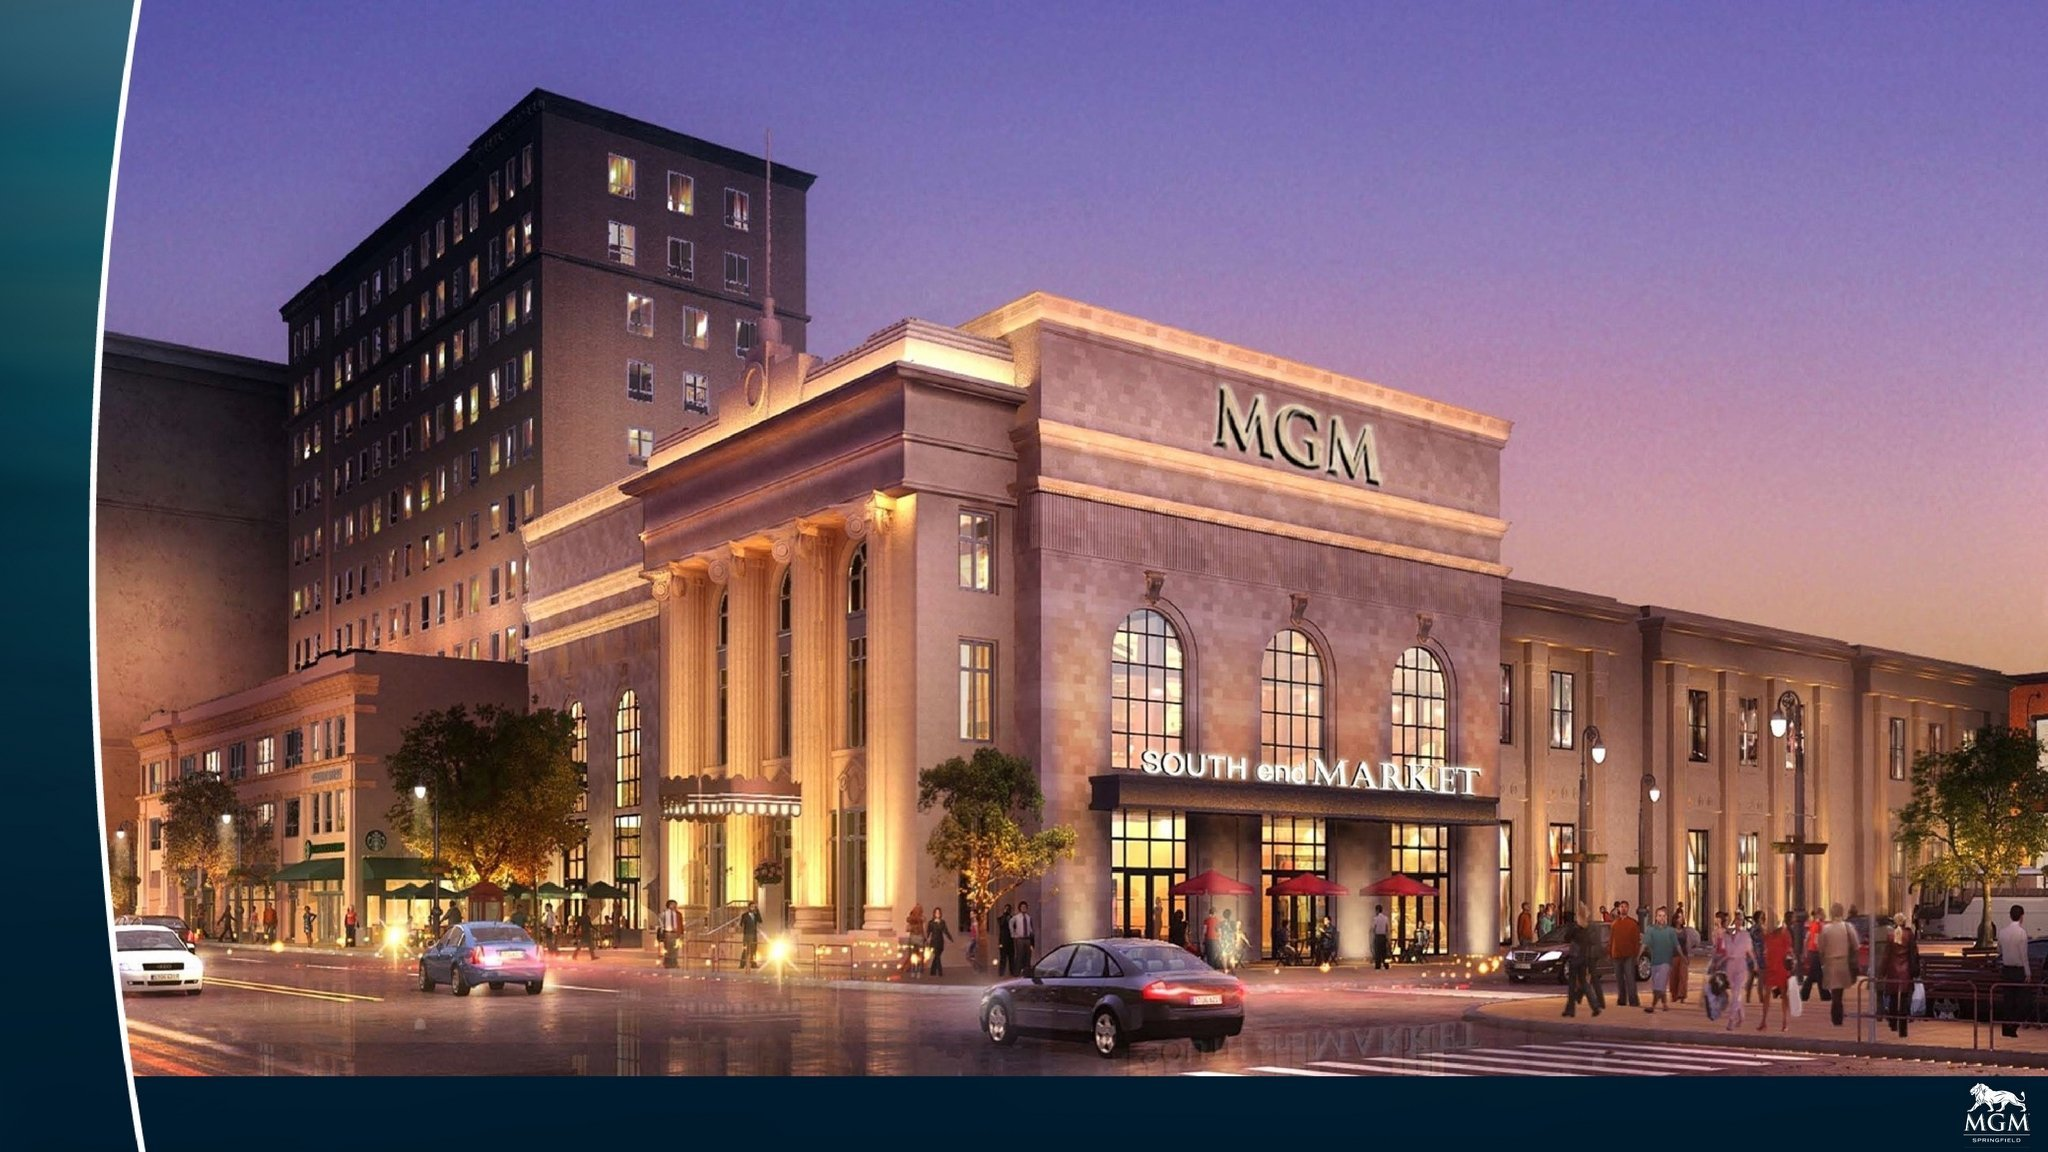 July 11th, 2020 – MGM Springfield Will Reopen Monday July 13th